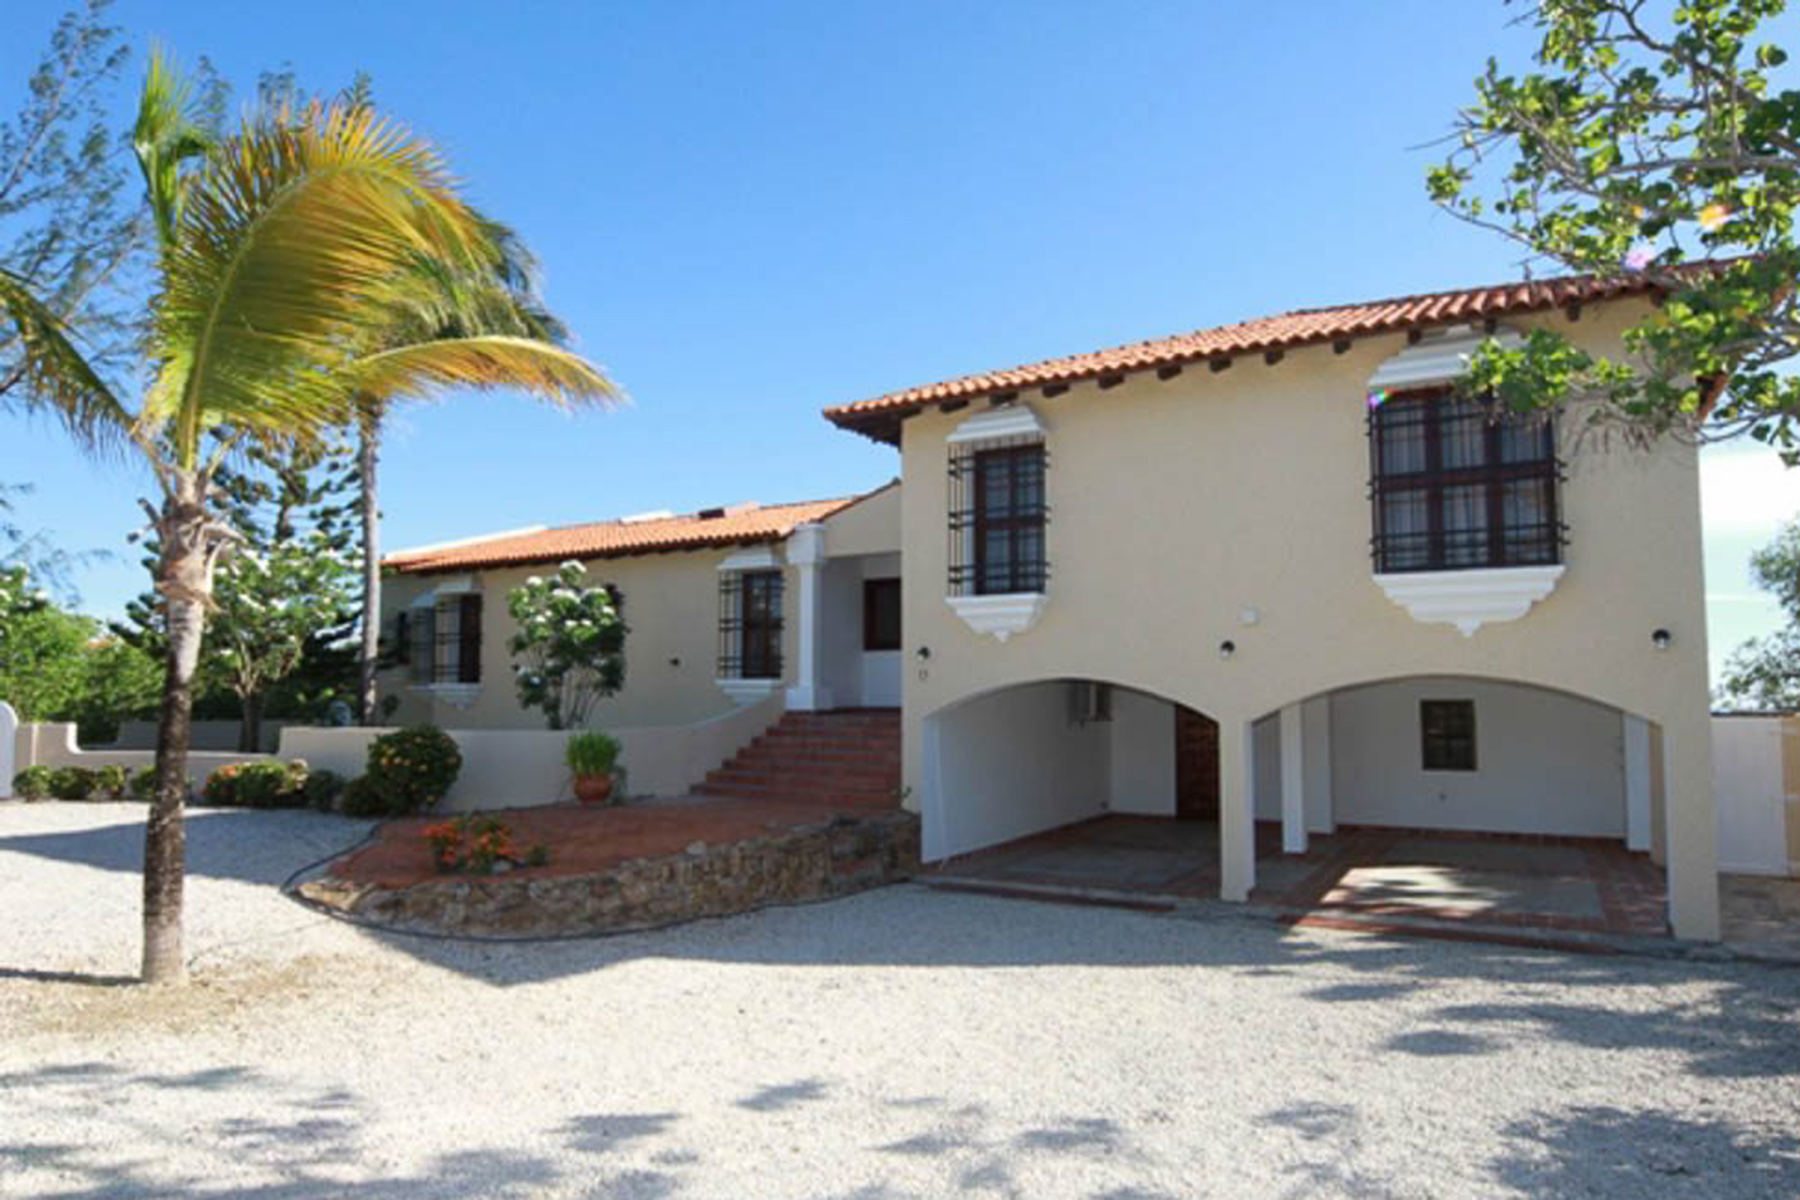 Single Family Home for Sale at Villa Turkesa Other Cities In Bonaire, Cities In Bonaire Bonaire